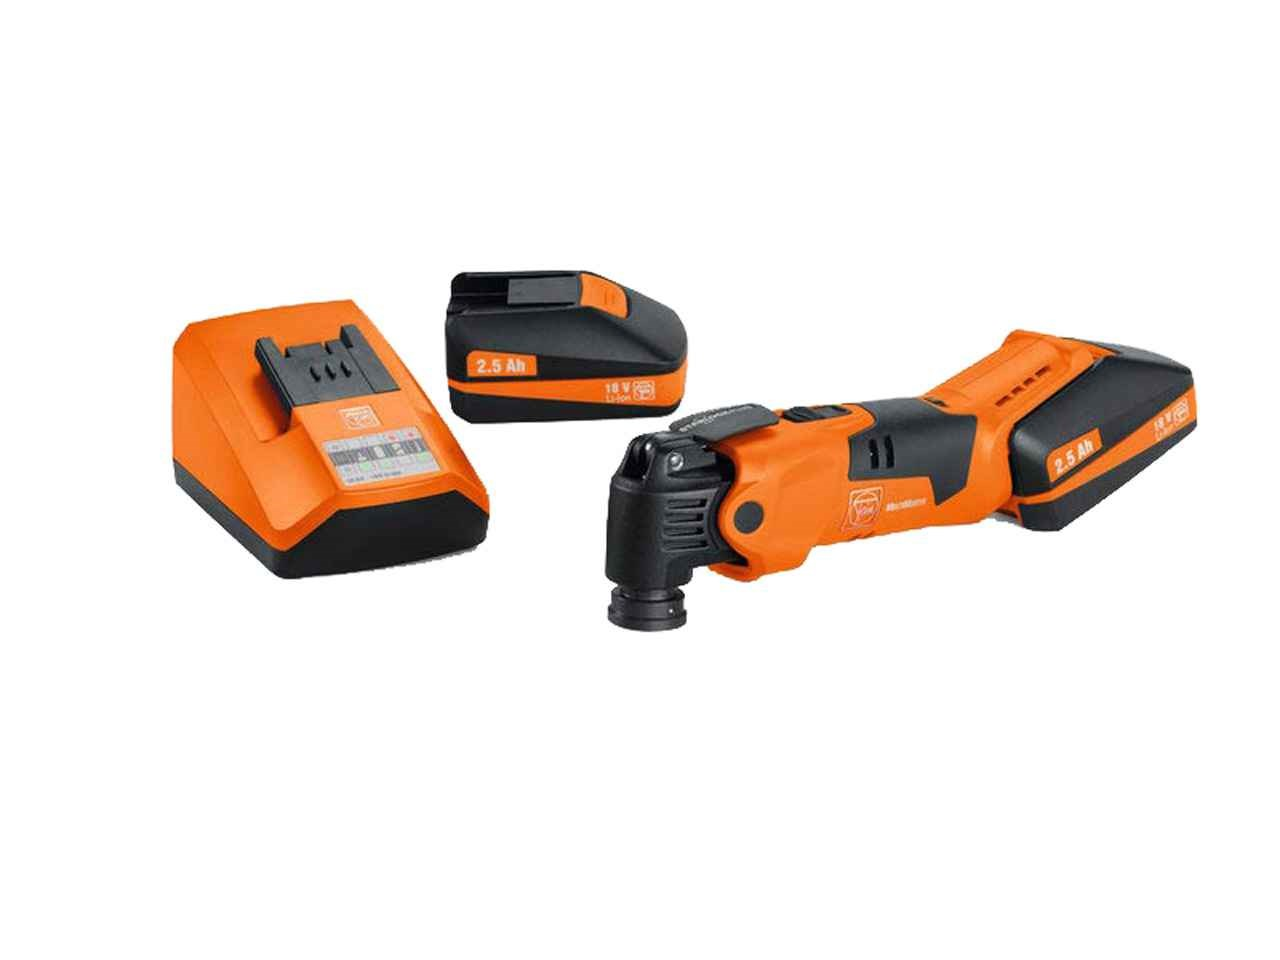 Fein AFMM18QSL 18v Cordless MultiMaster with 2 x 2 5Ah Li-Ion Battery